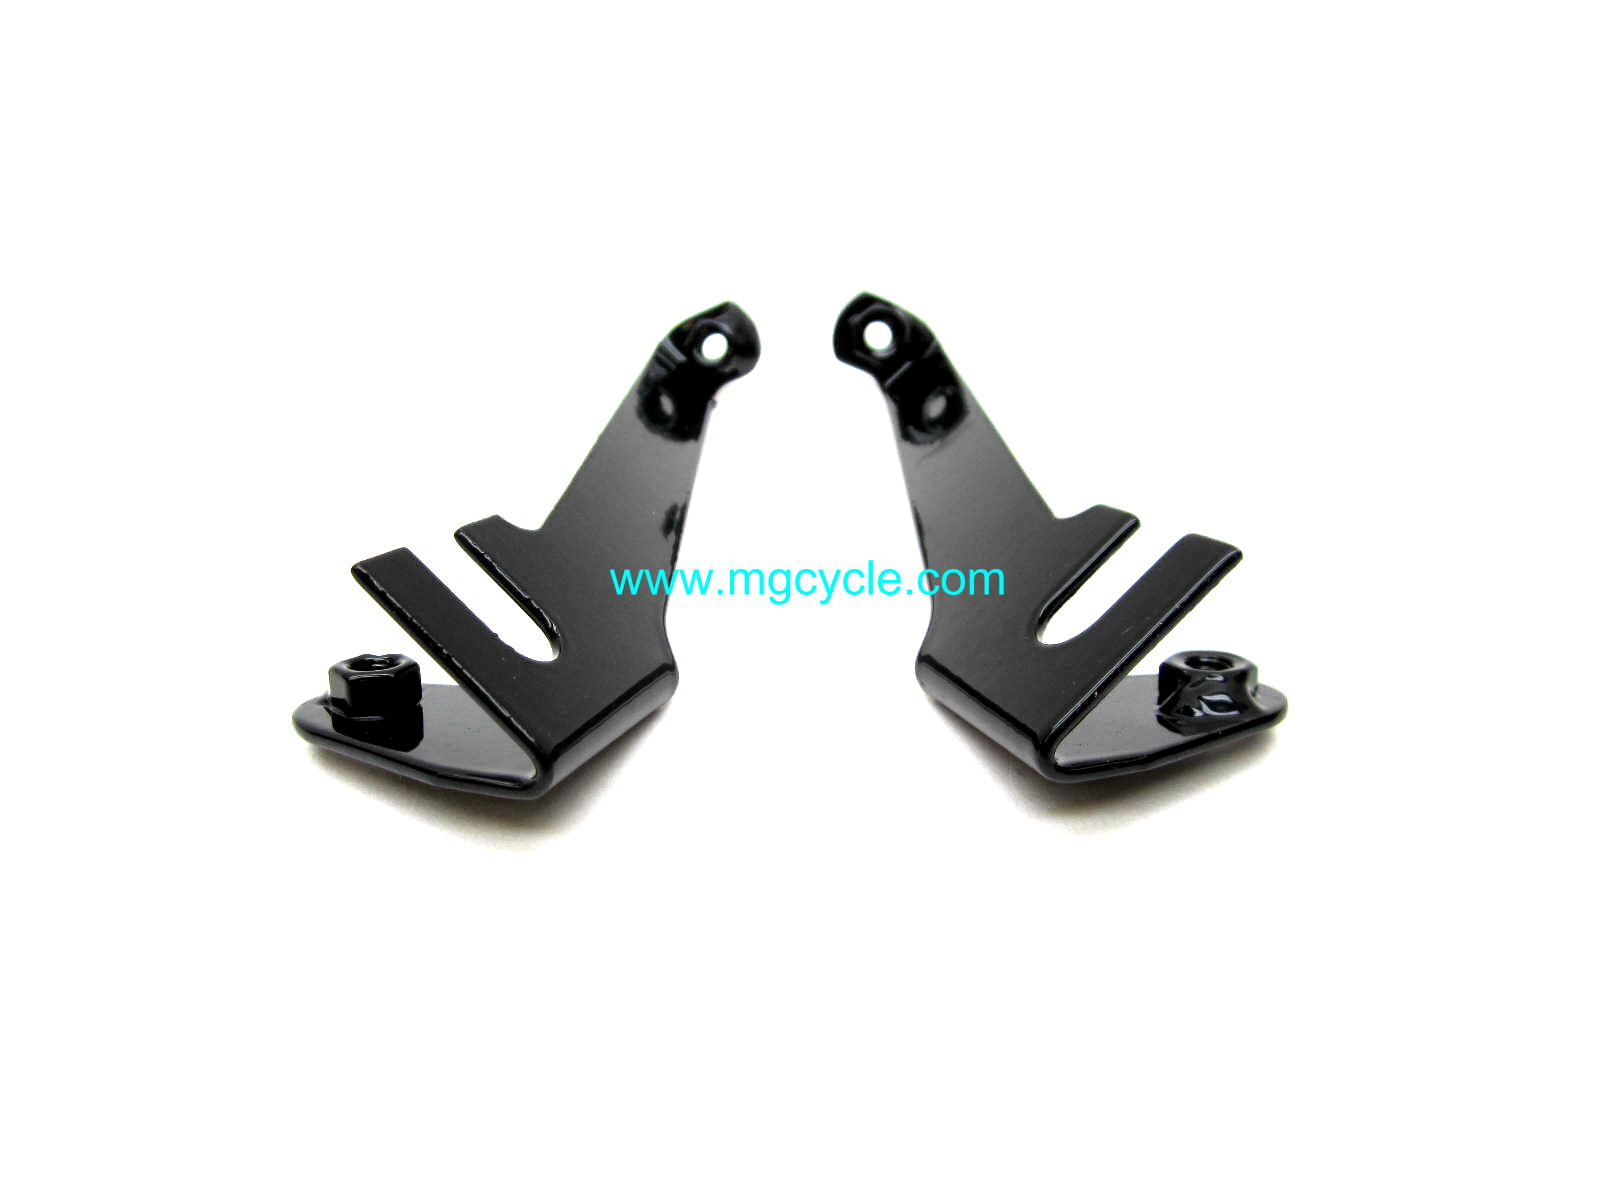 fairing bracket set, LM1, L-R, black, upper only